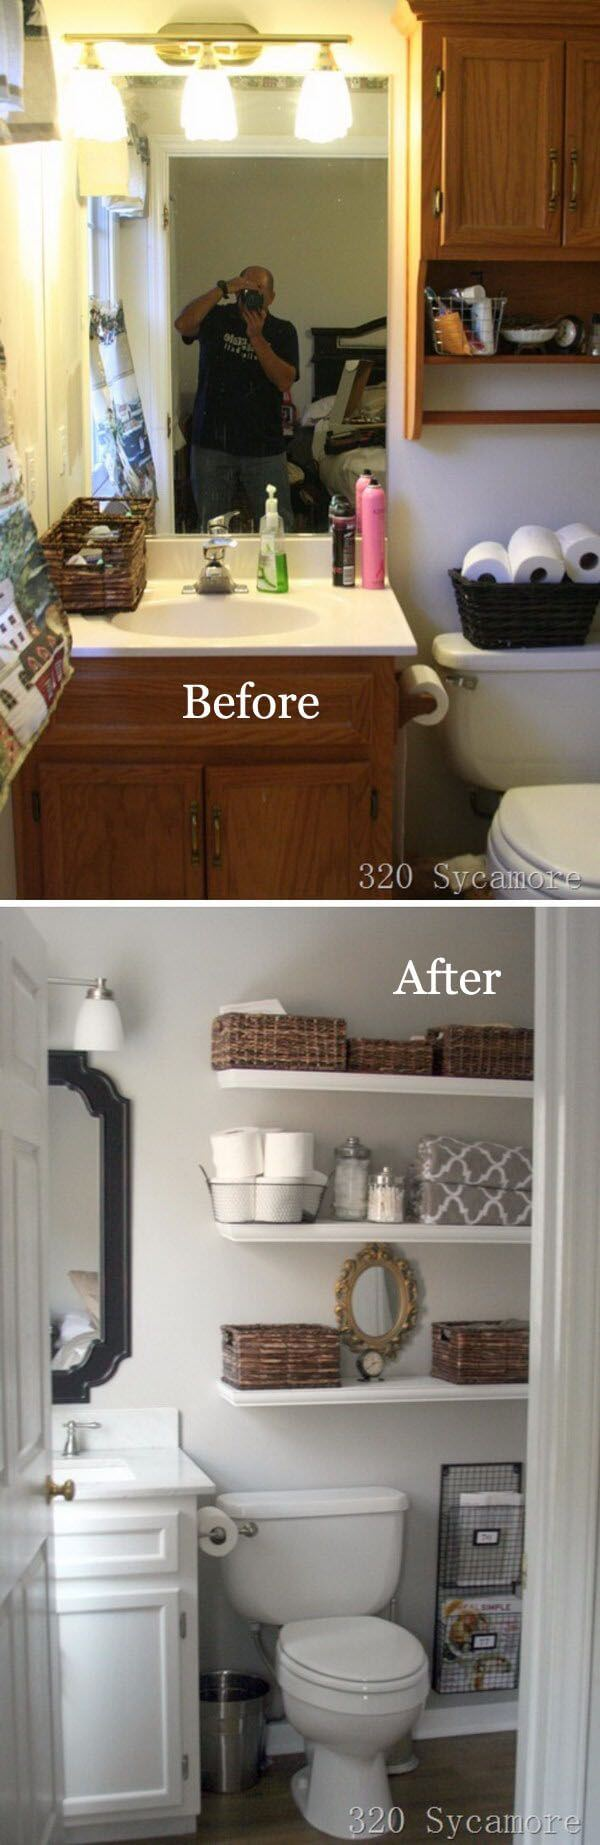 Good Ideas For Bathroom Shelves Part - 11: Simply Sleek DIY Bathroom Shelf Ideas